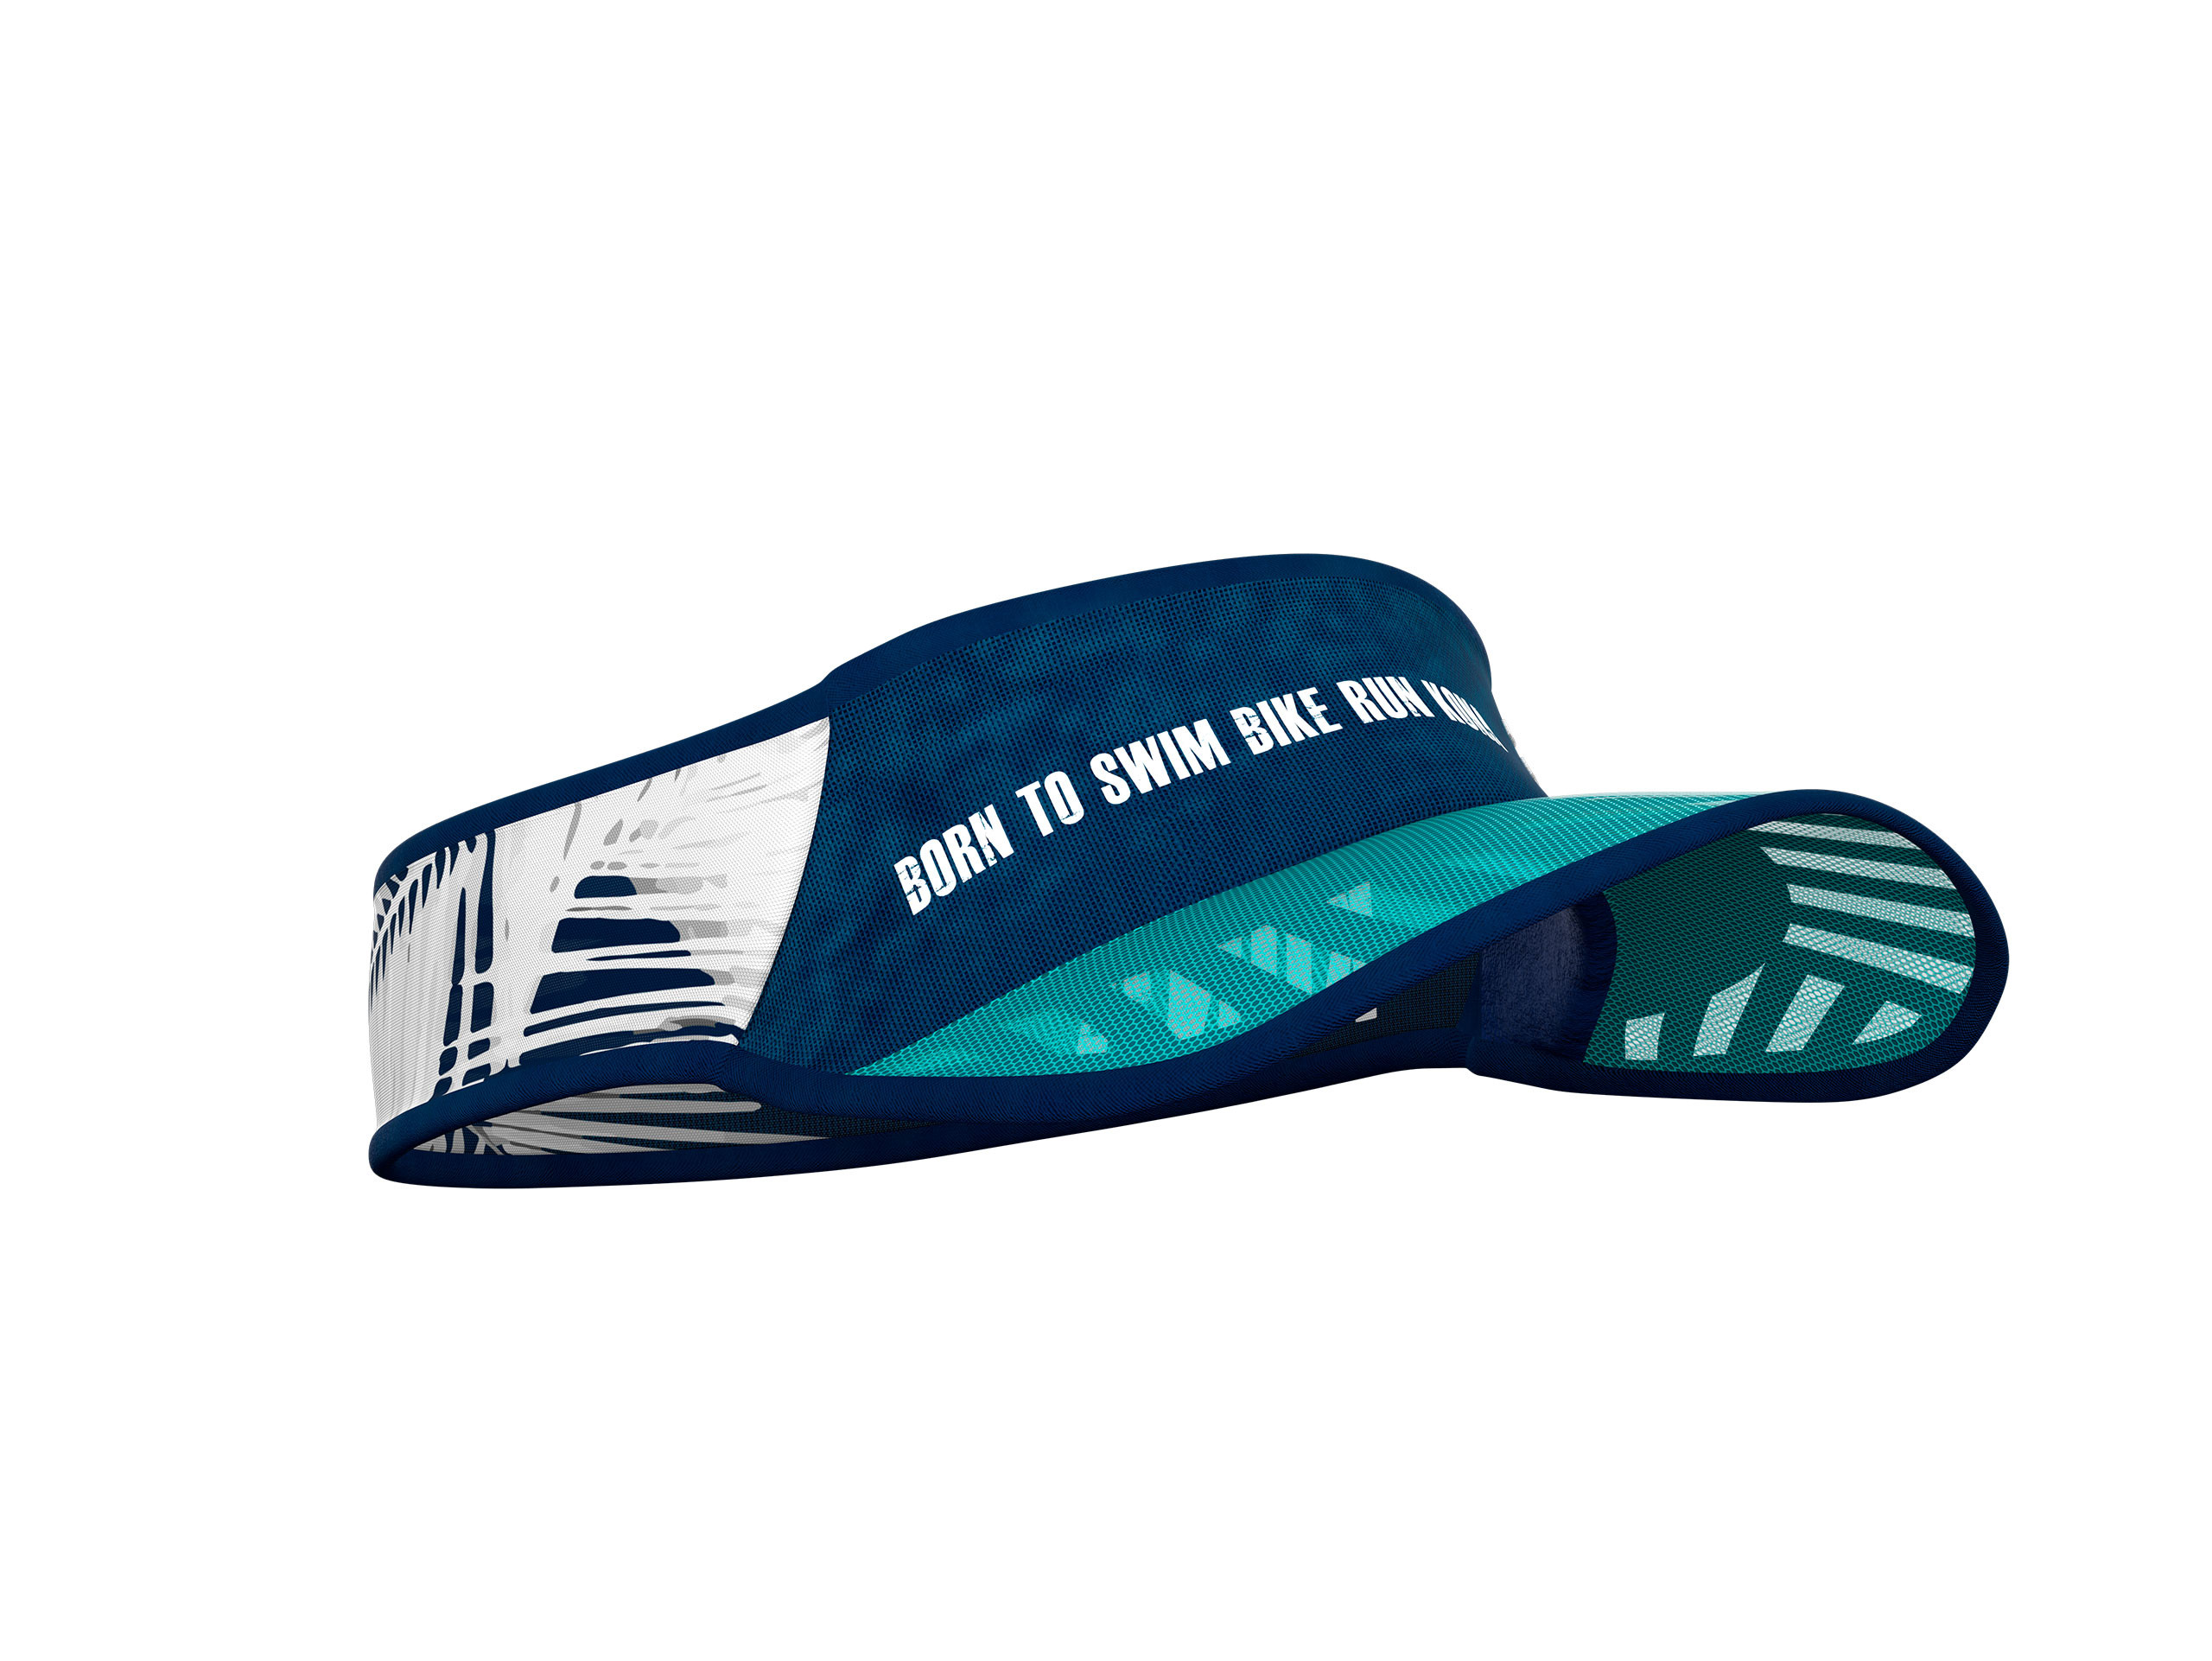 Visera Spiderweb Ultralight - Kona 2019